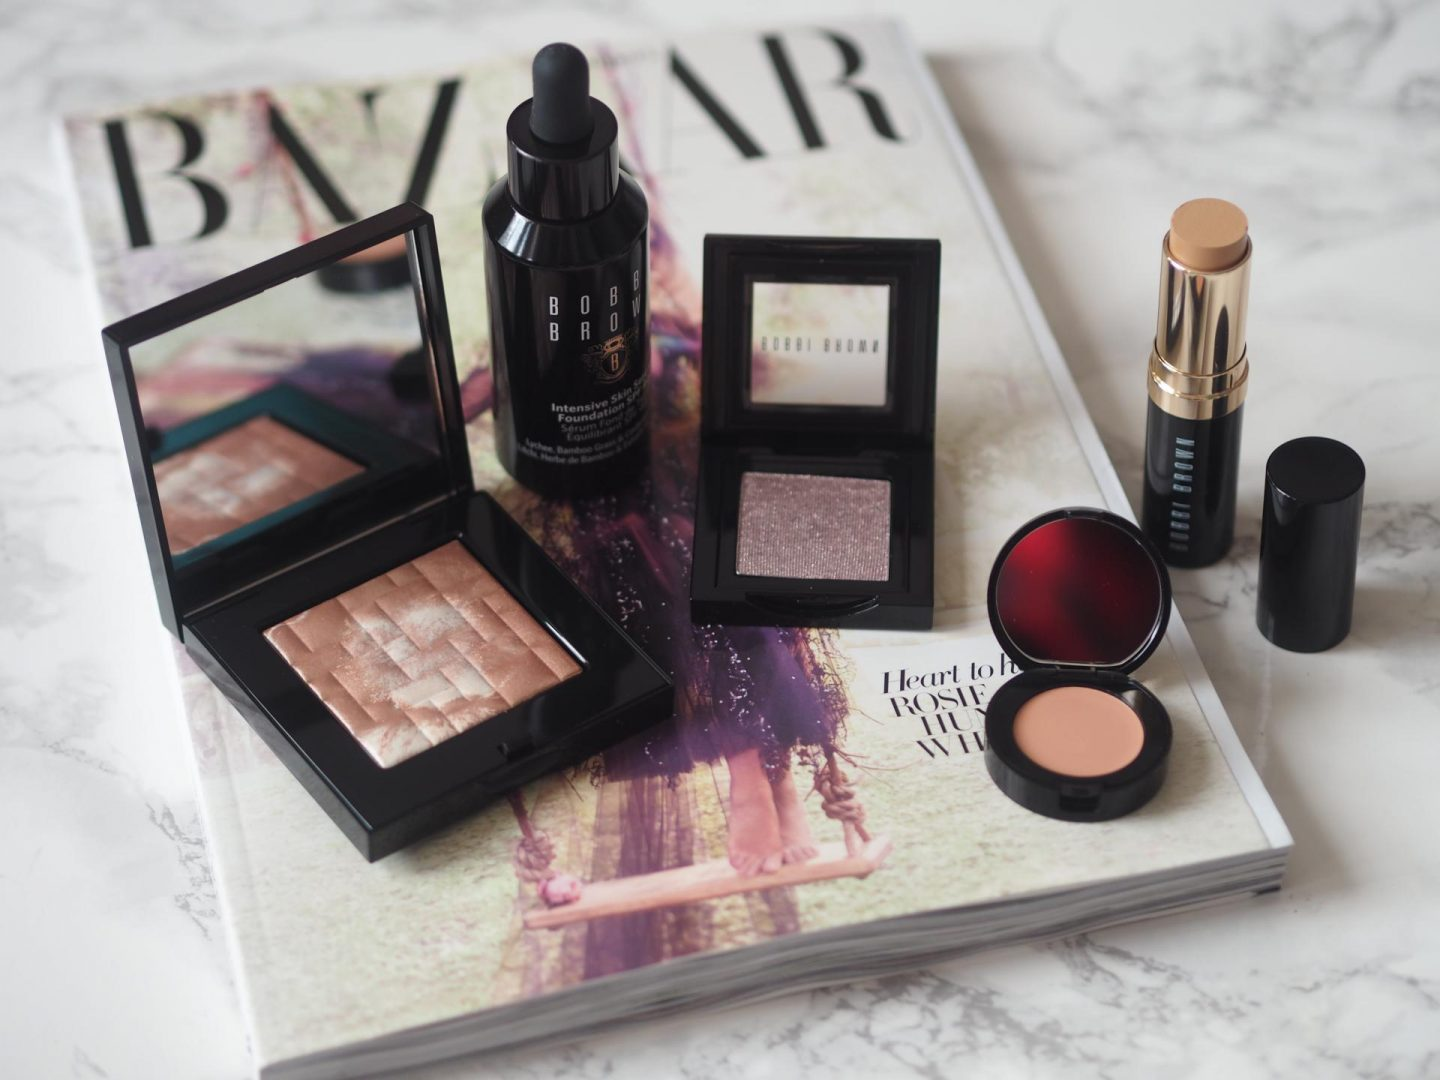 Bobbi brown products